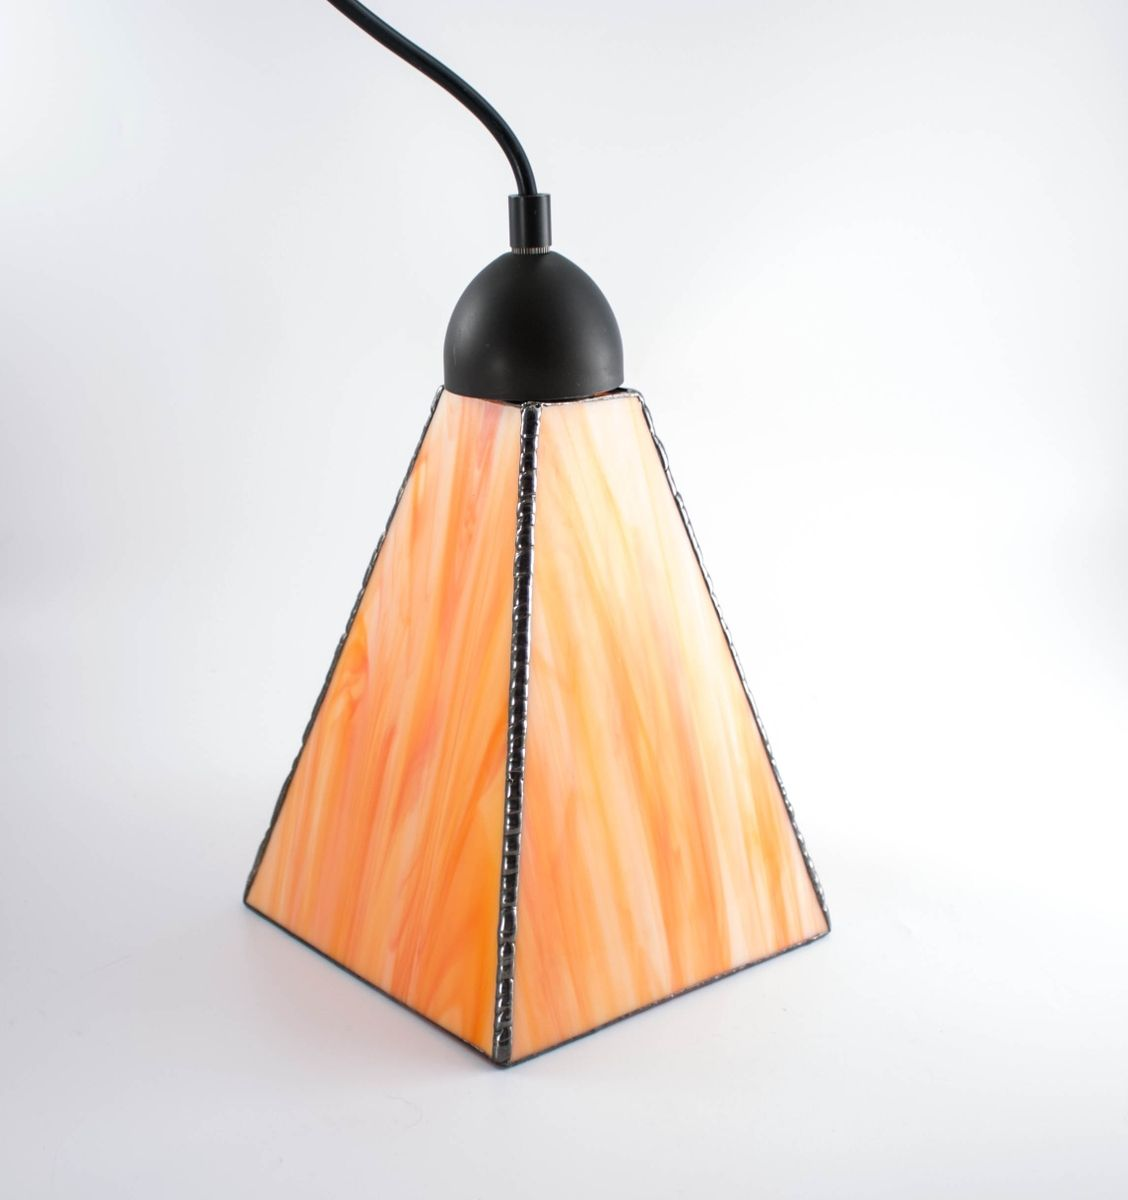 Hand Crafted Custom Streaky Art Glass Pendant Lights Choice Of Colors By Nostalgia N More Custommade Com